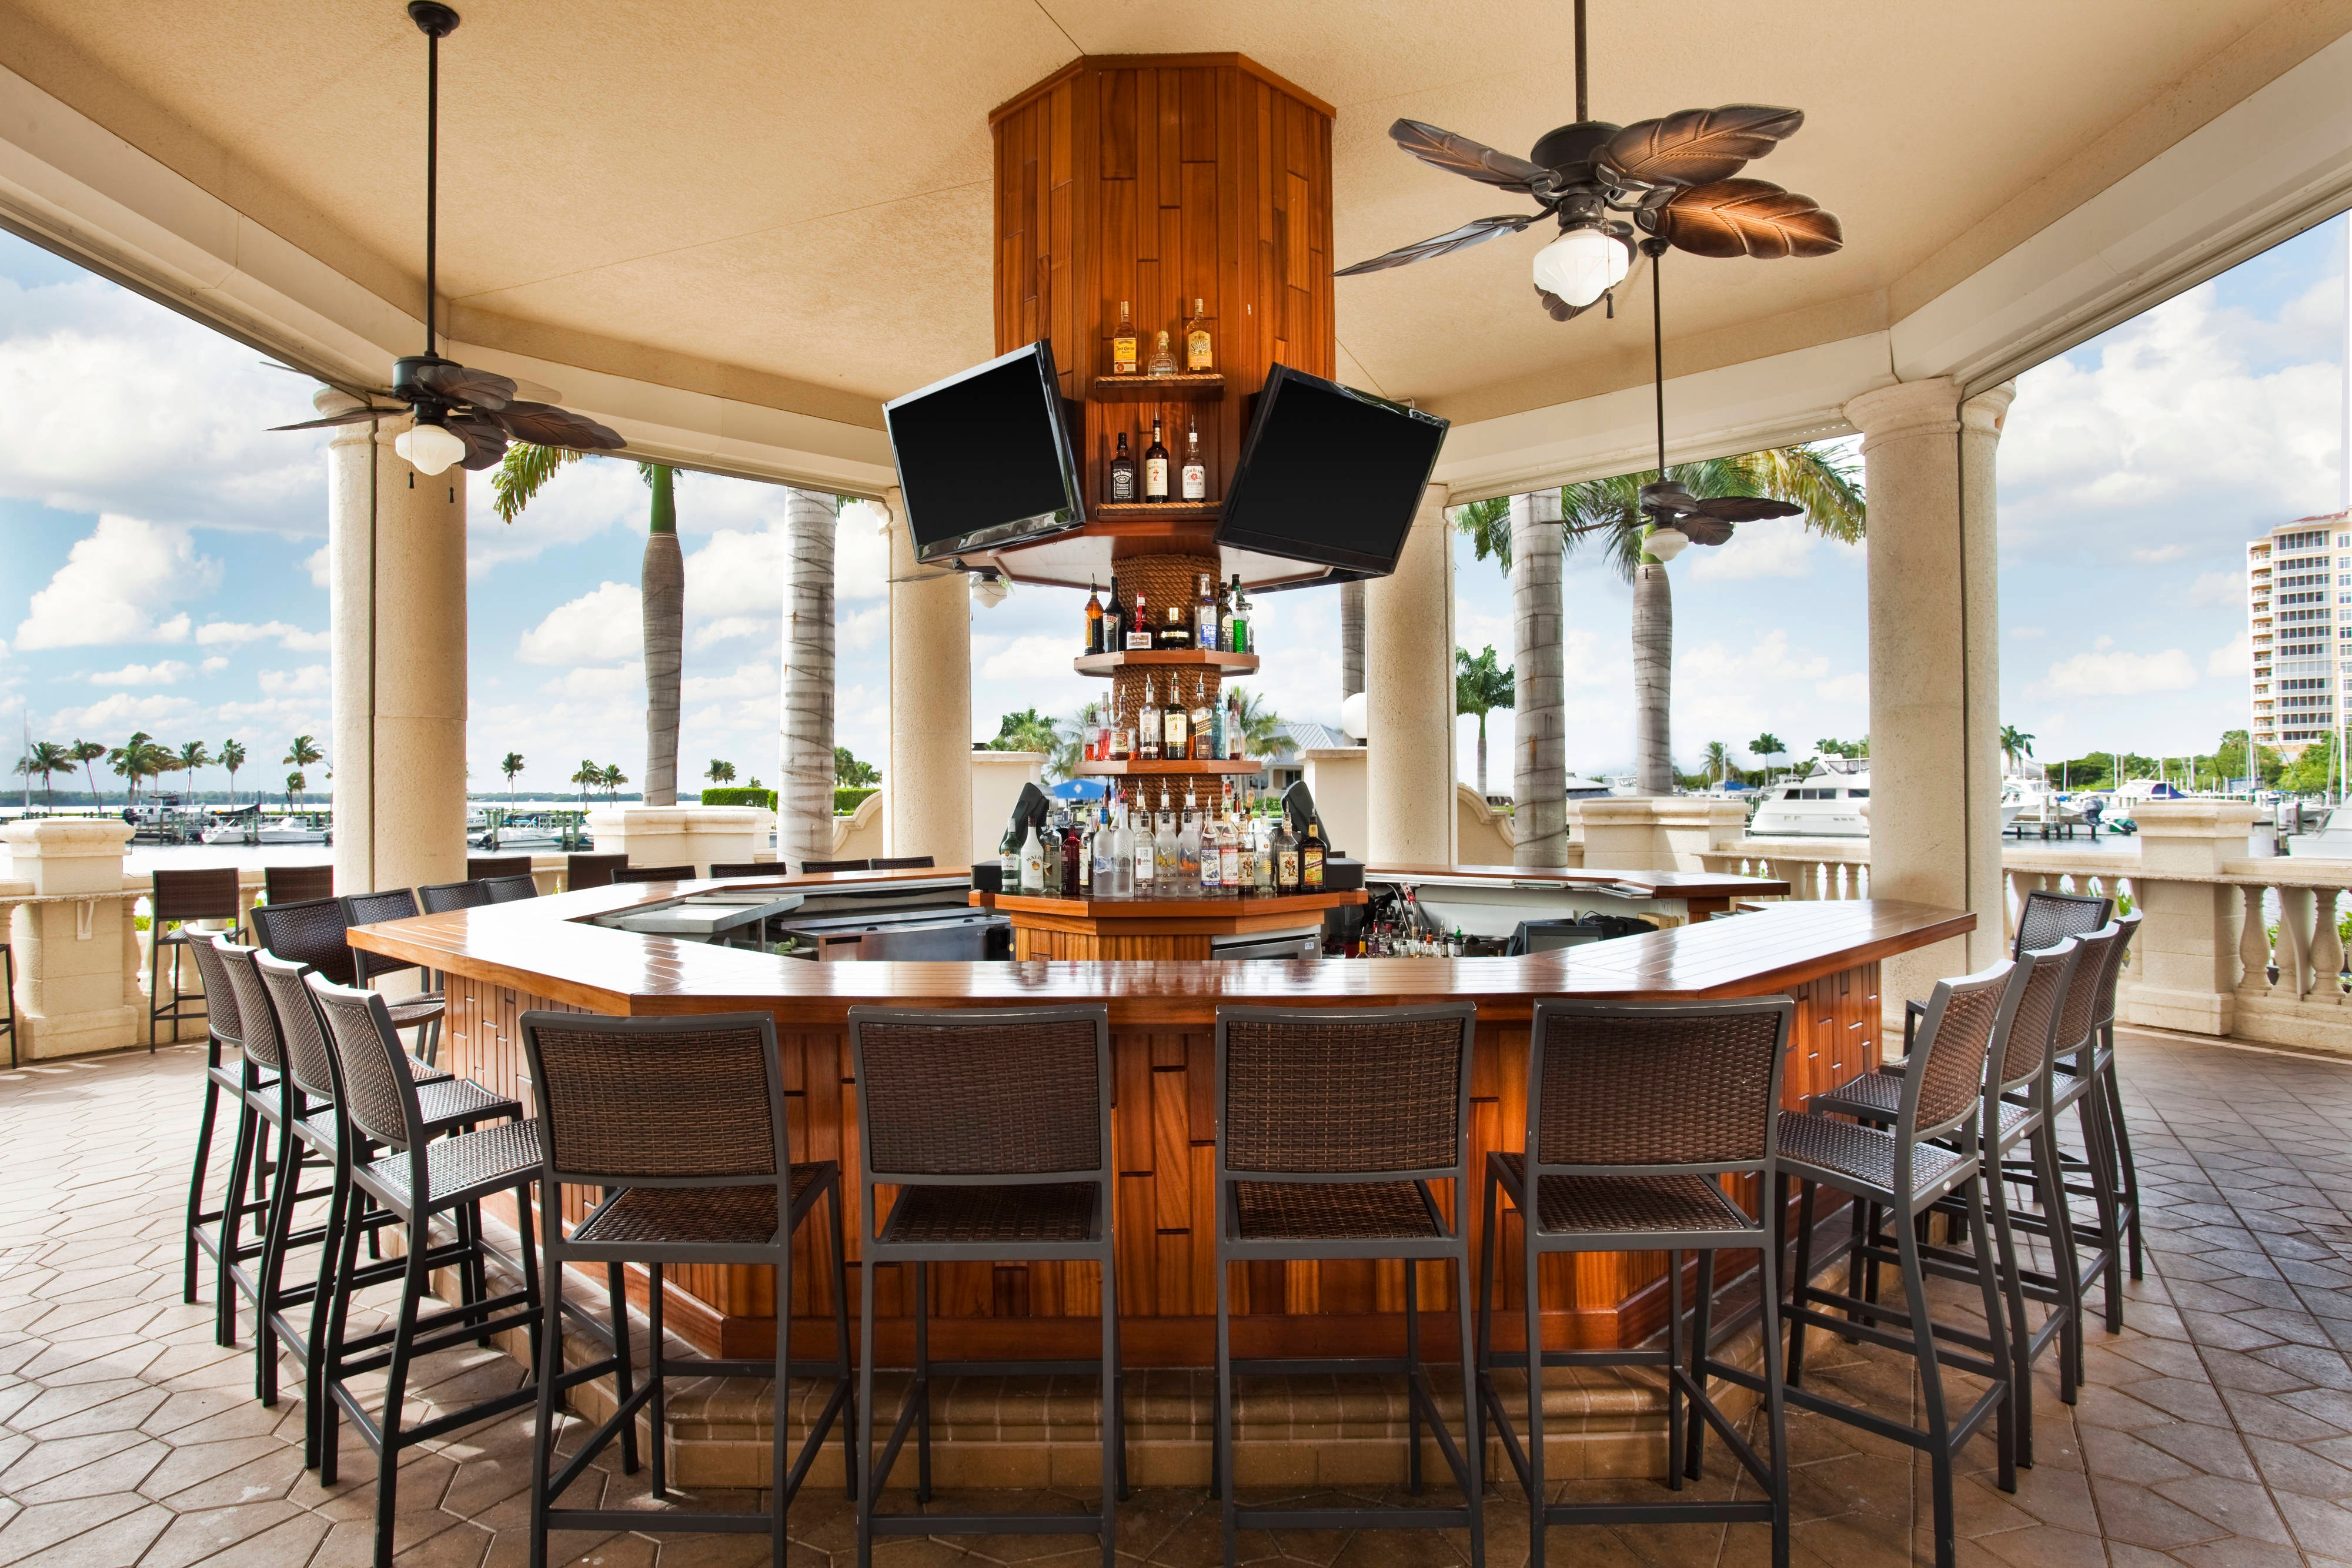 The Nauti Mermaid Dockside Bar & Grill